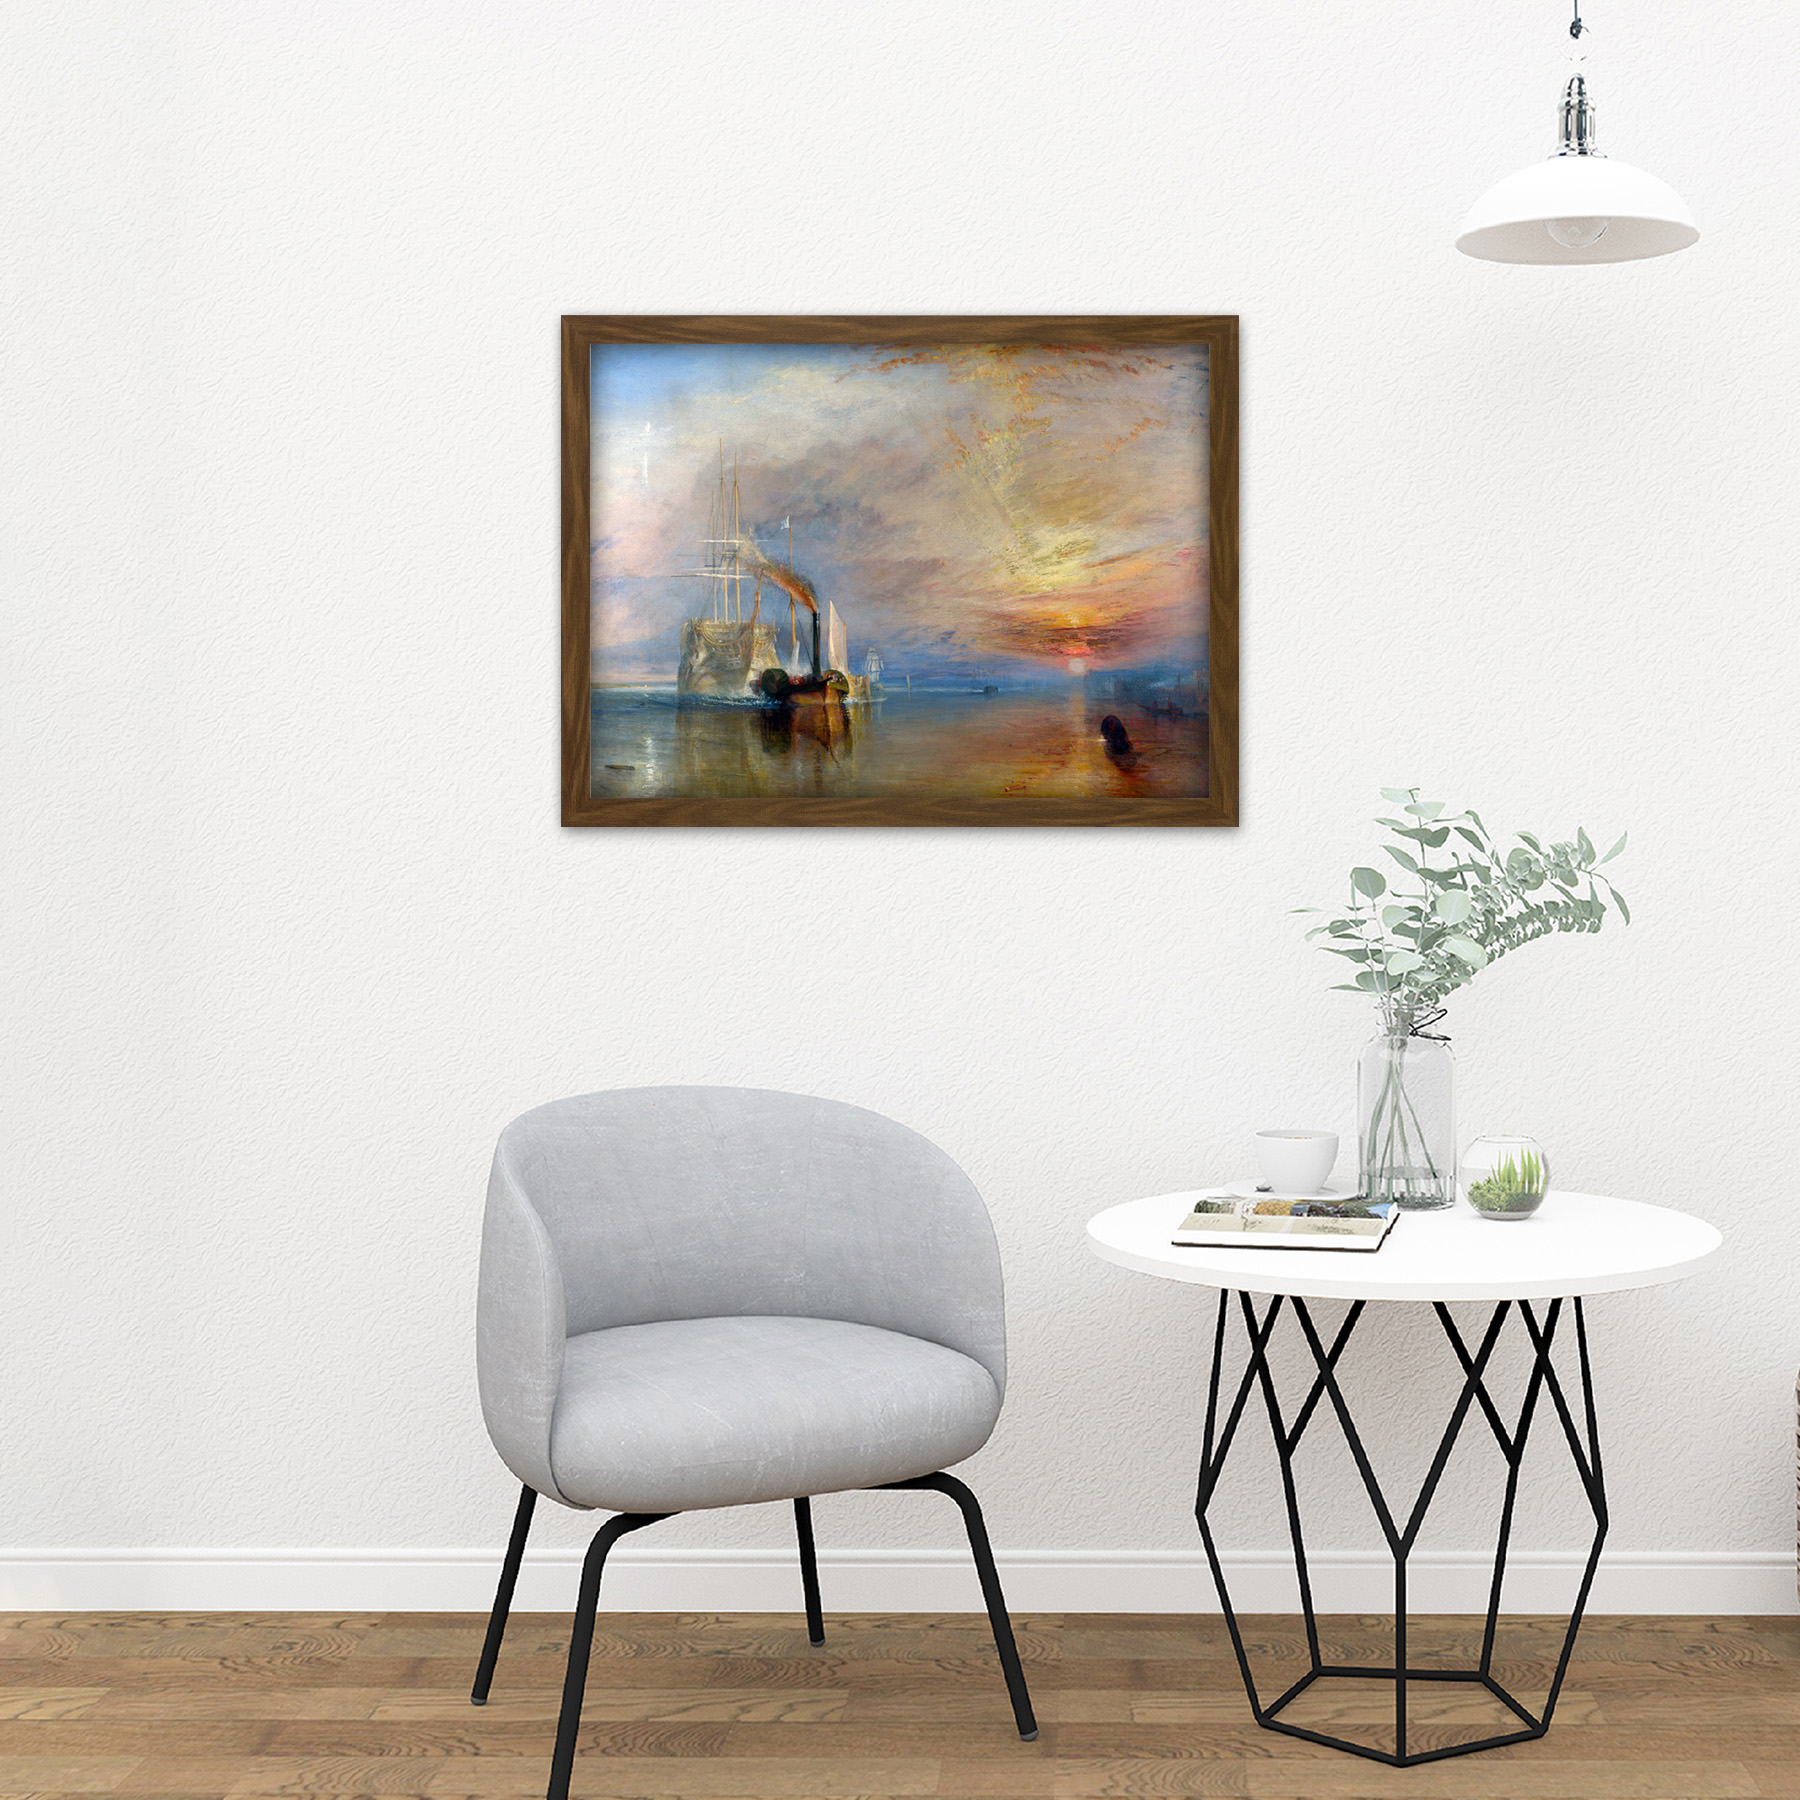 Turner-The-Fighting-Temeraire-Ship-Painting-Framed-Wall-Art-Print-18X24-In thumbnail 10